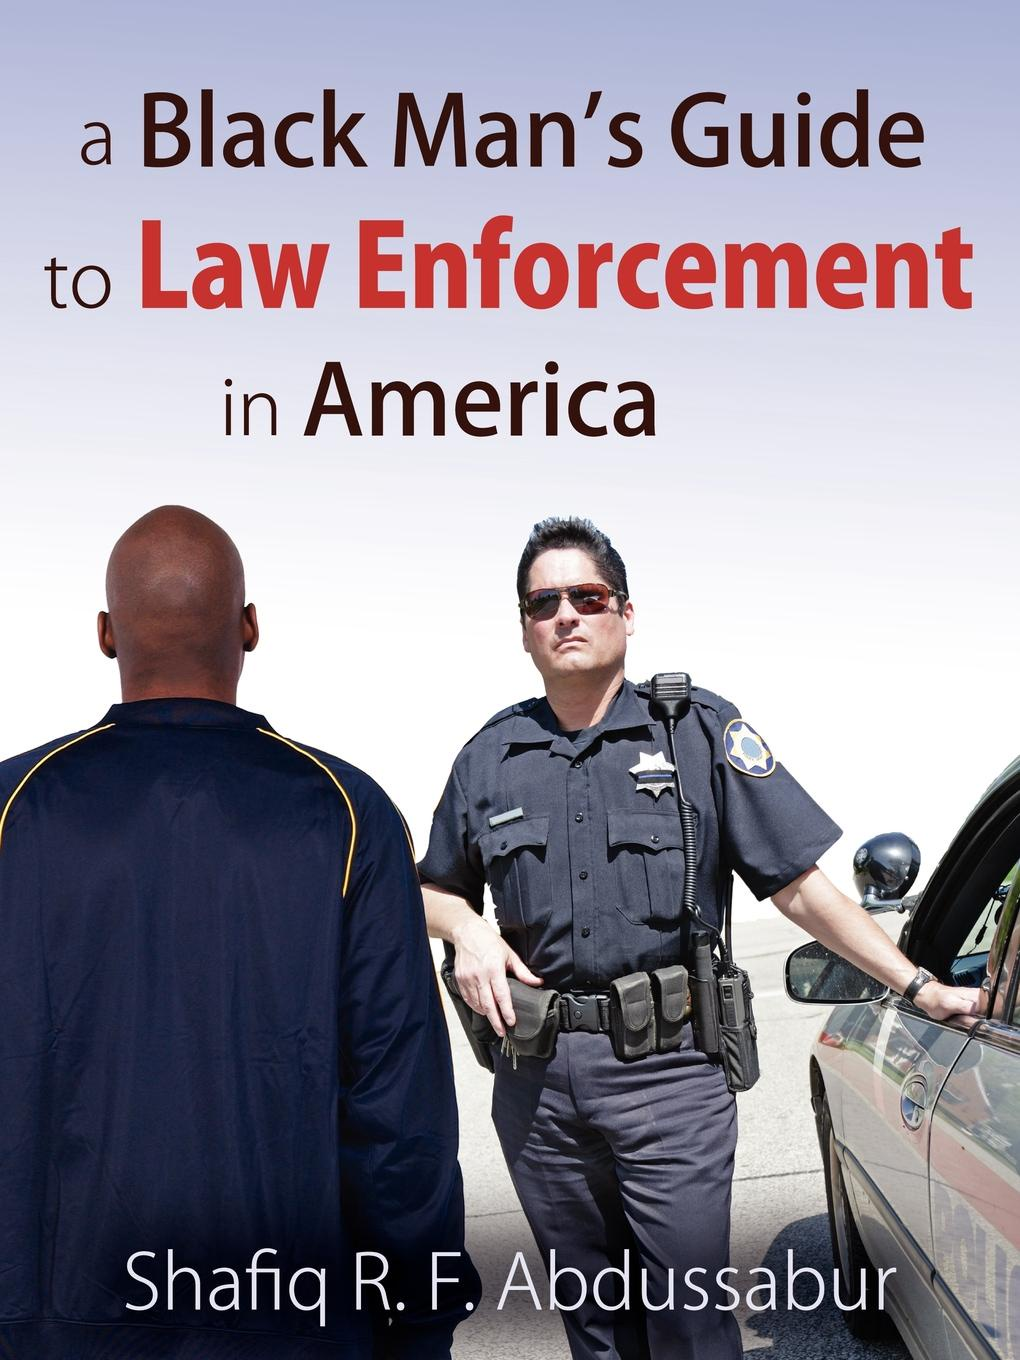 Shafiq R. F. Abdussabur A Black Man's Guide to Law Enforcement in America dana muir m a manager s guide to employment law how to protect your company and yourself